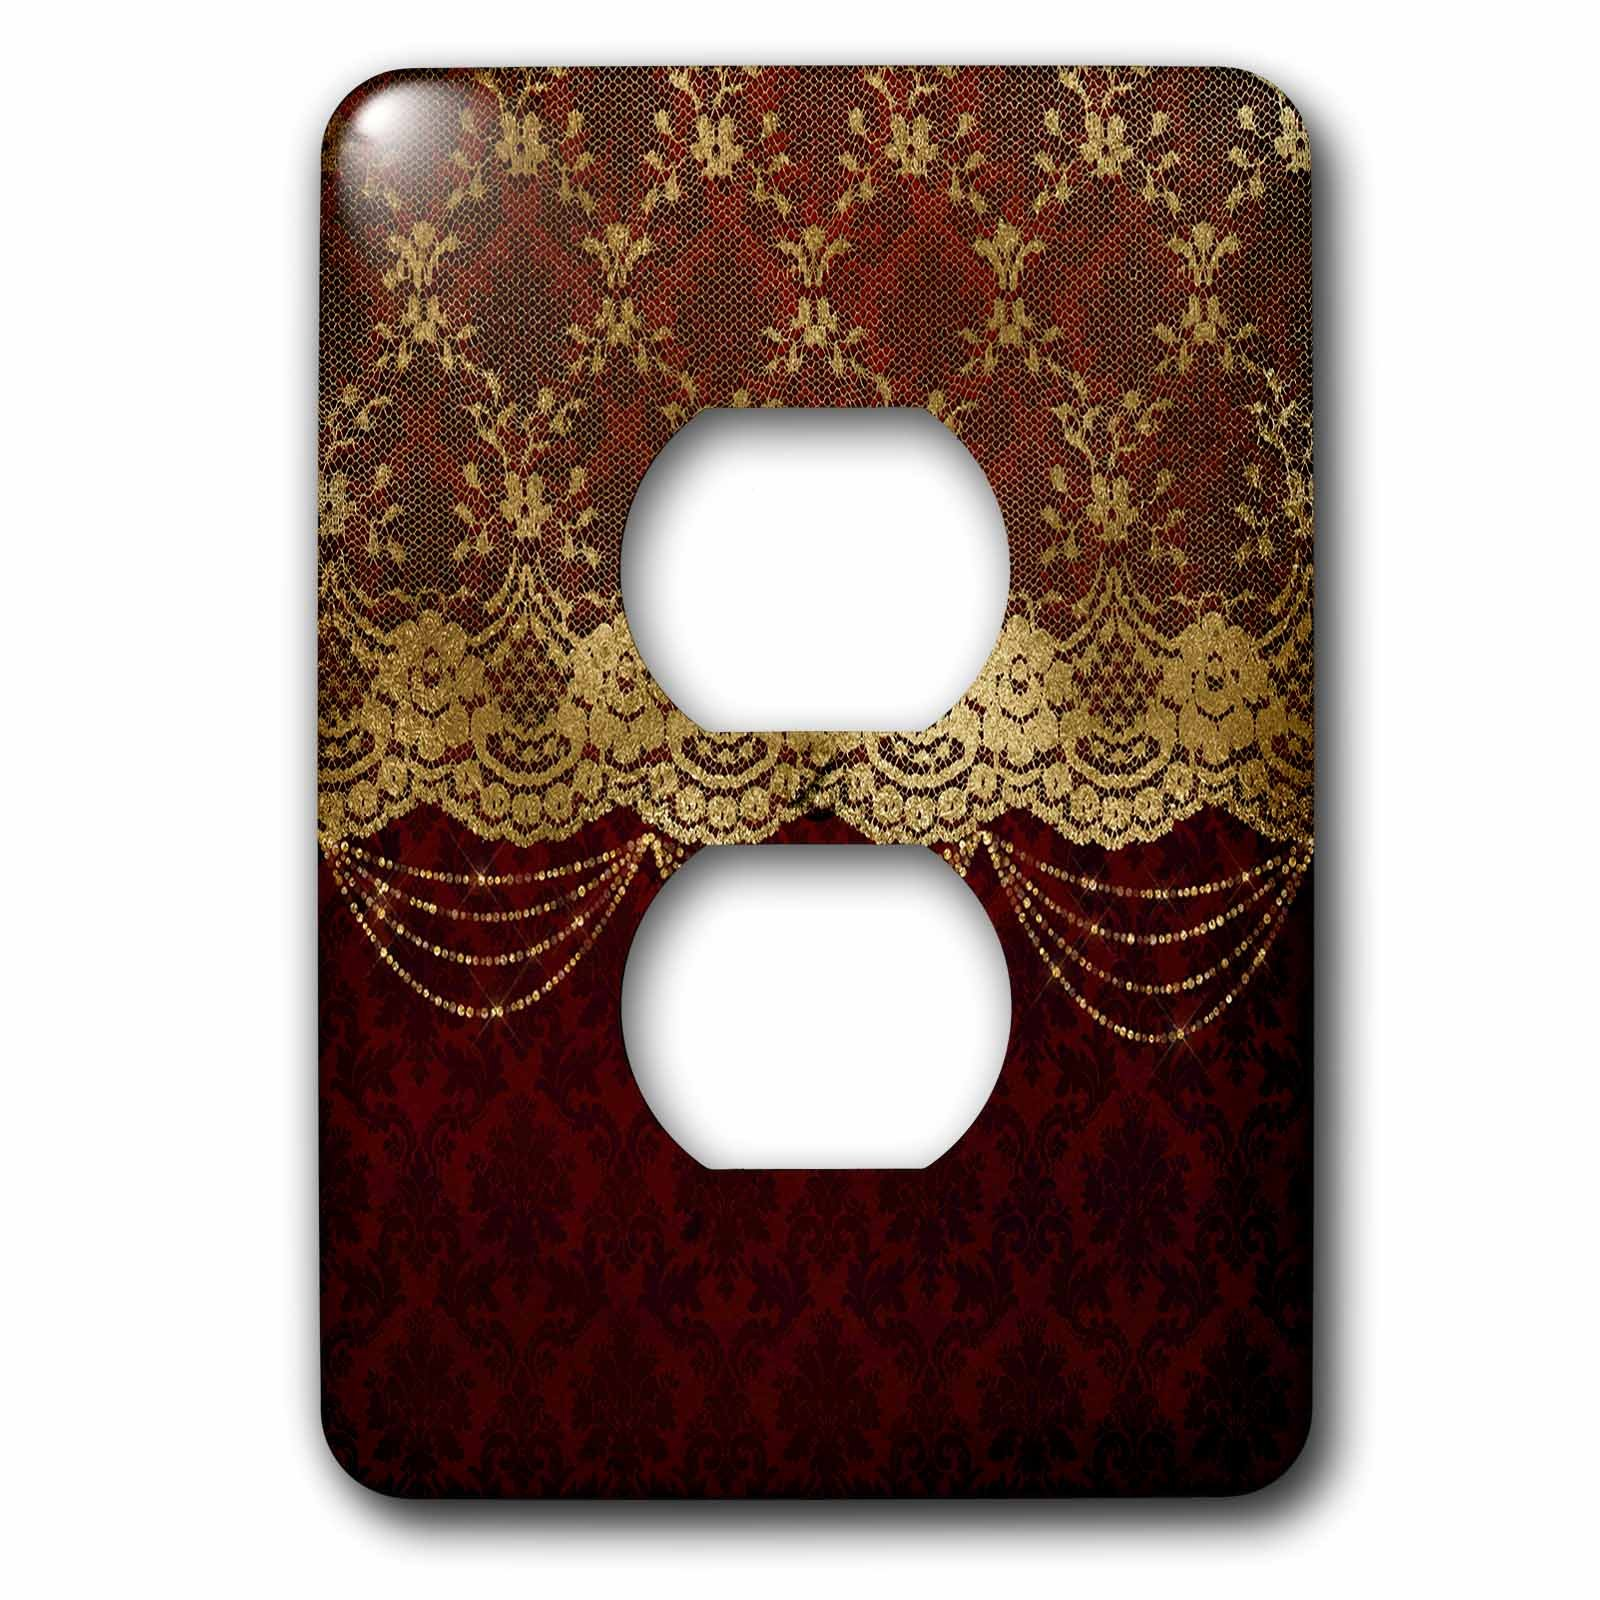 3D Rose lsp_255627_6 Gold Floral Luxury Lace with Chain on Dark Red Damask Background 2 Plug Outlet Cover by 3D Rose (Image #1)